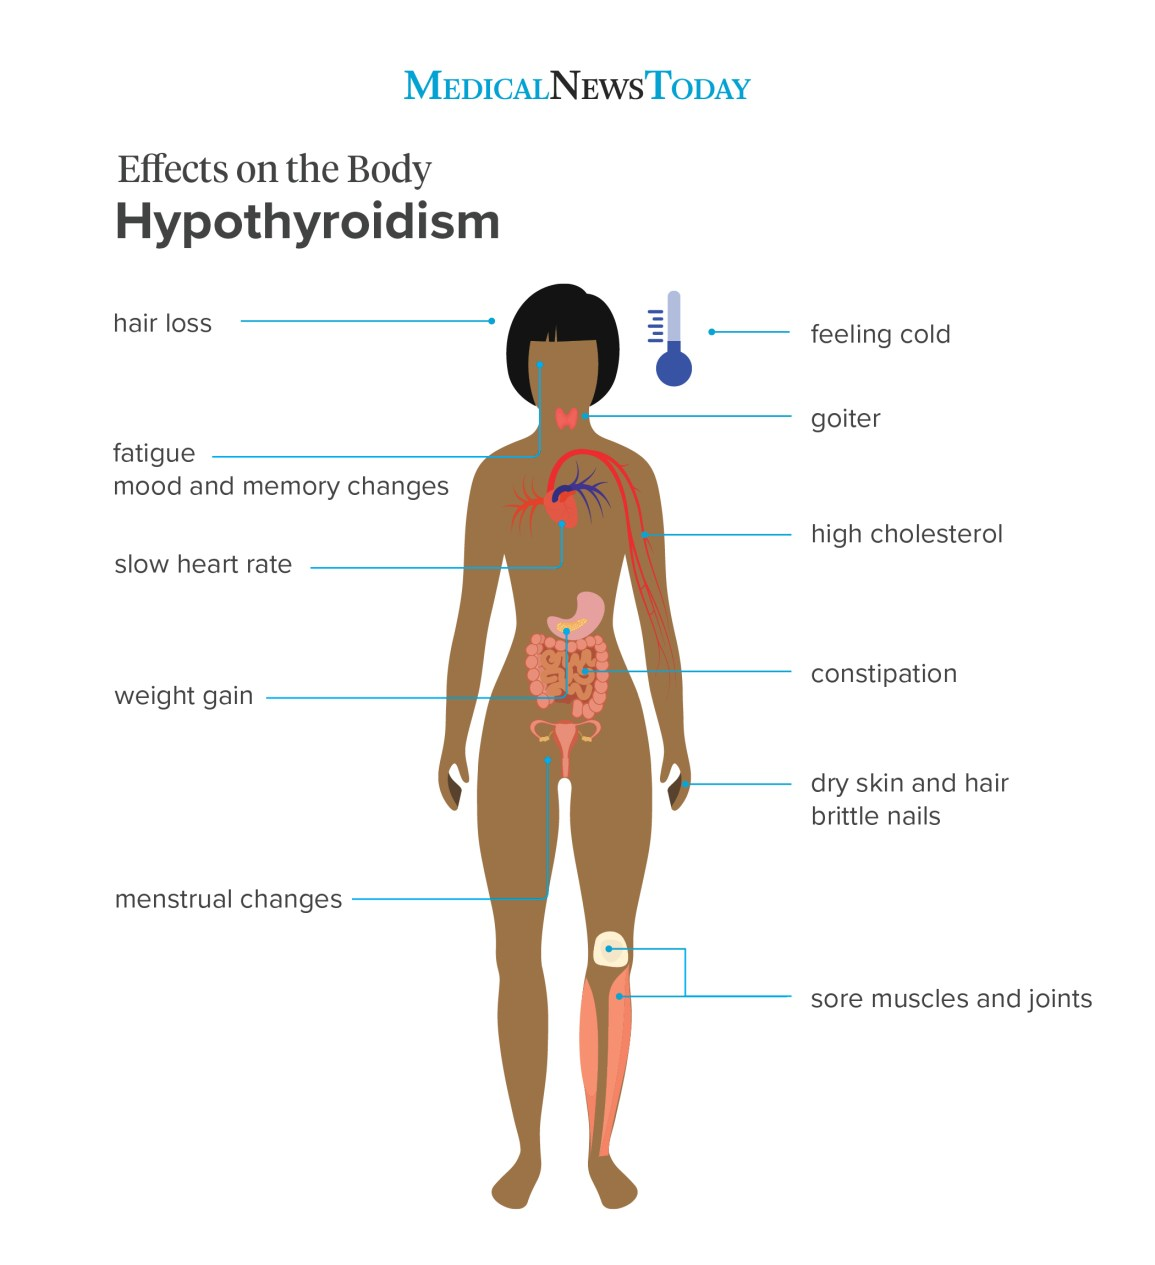 Hypothyroidism Symptoms 12 Signs To Look Out For